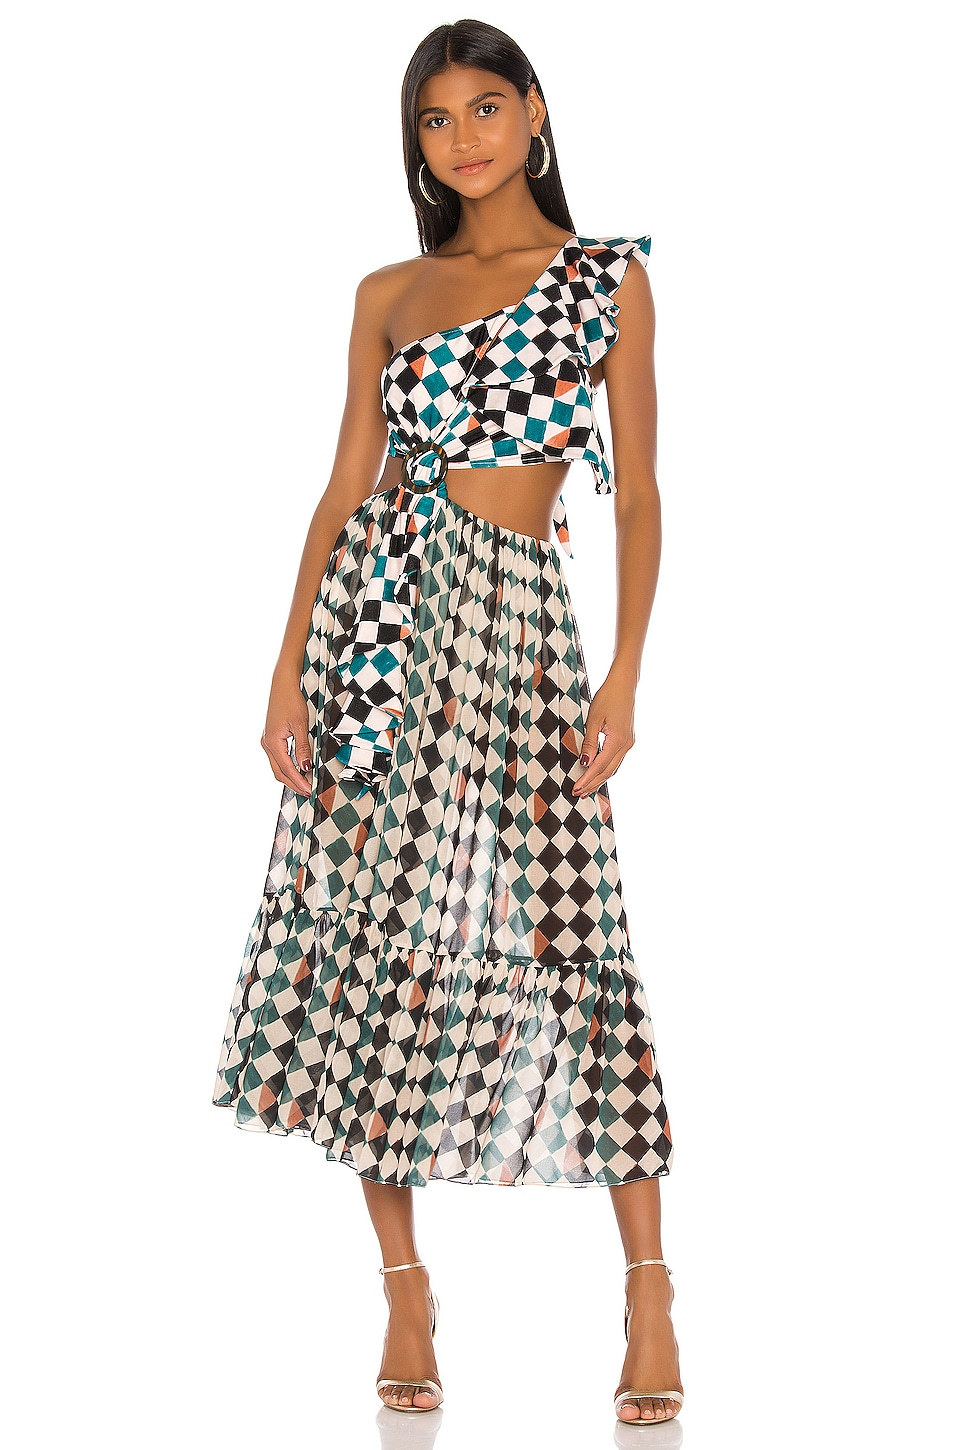 PatBO Check One Shoulder Beach Dress in Teal Multi